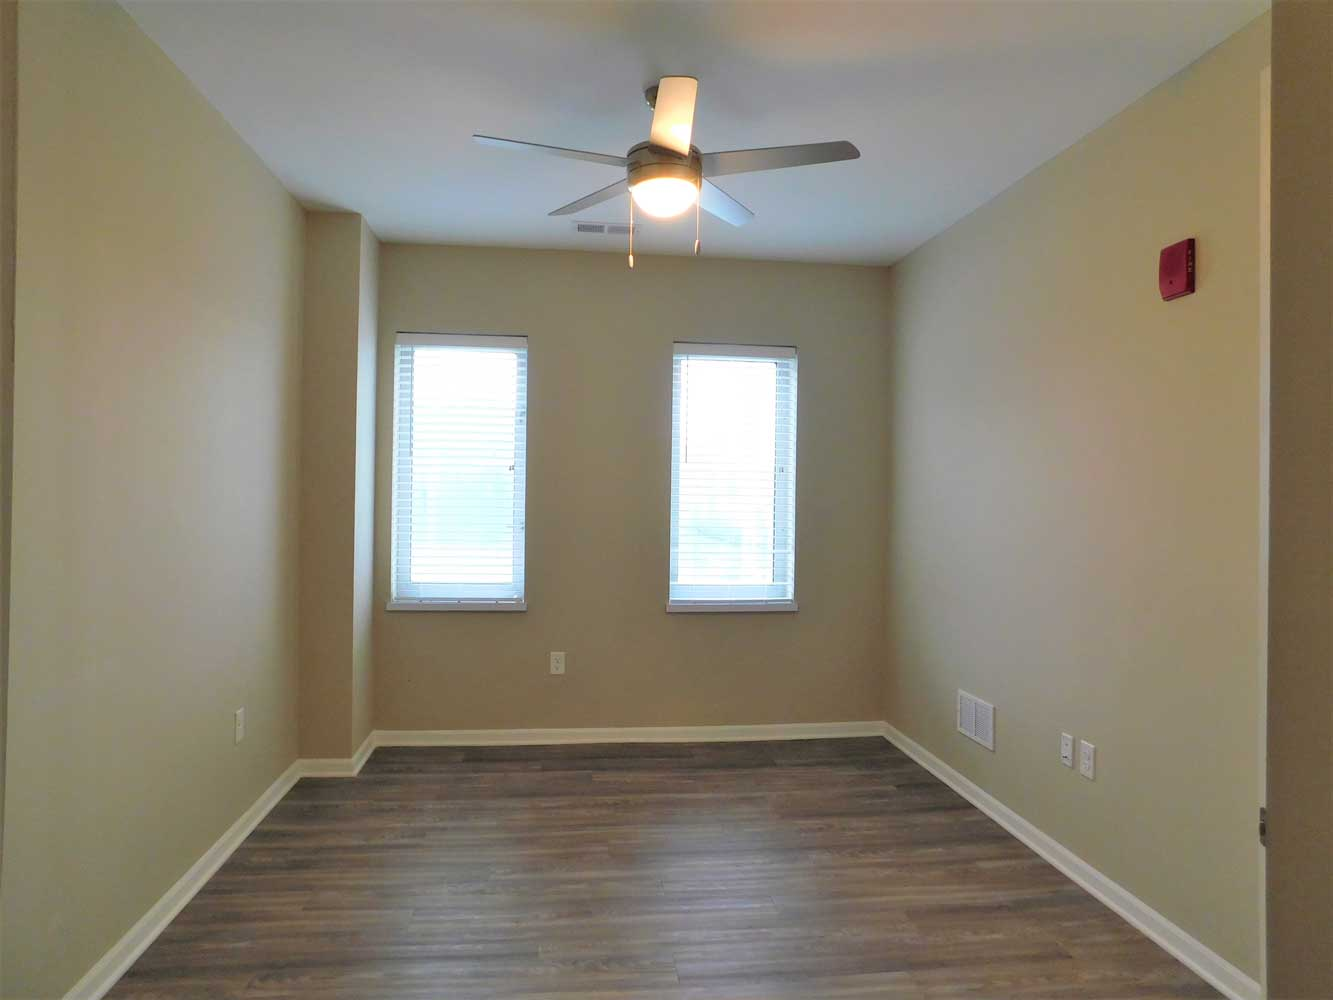 Open Concept Floor Plans at Midtown Plaza Apartments in Kansas City, MO